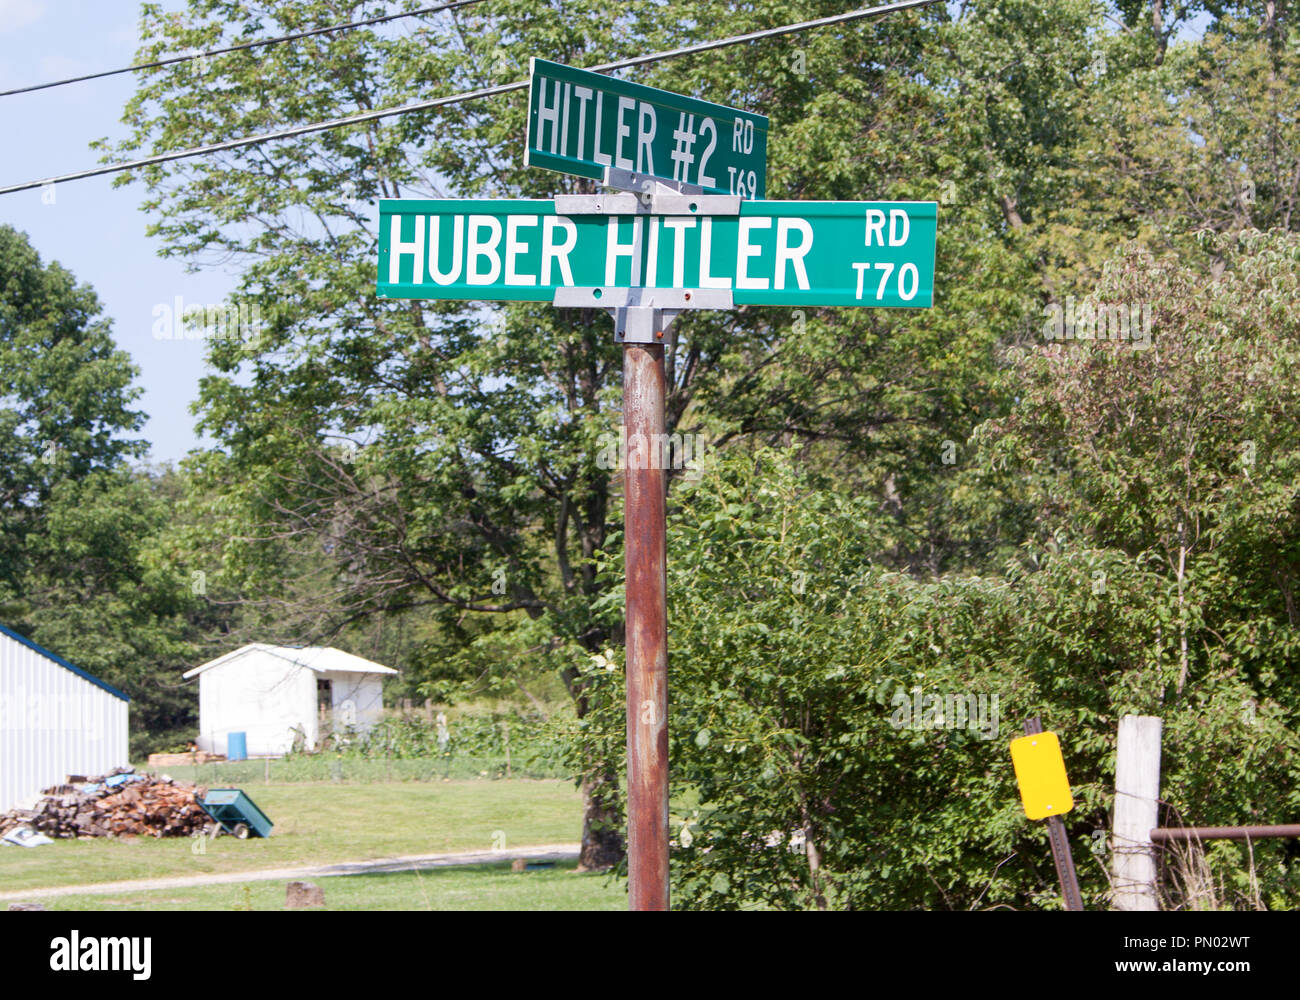 Hitler Road sign in Circleville Ohio - Stock Image